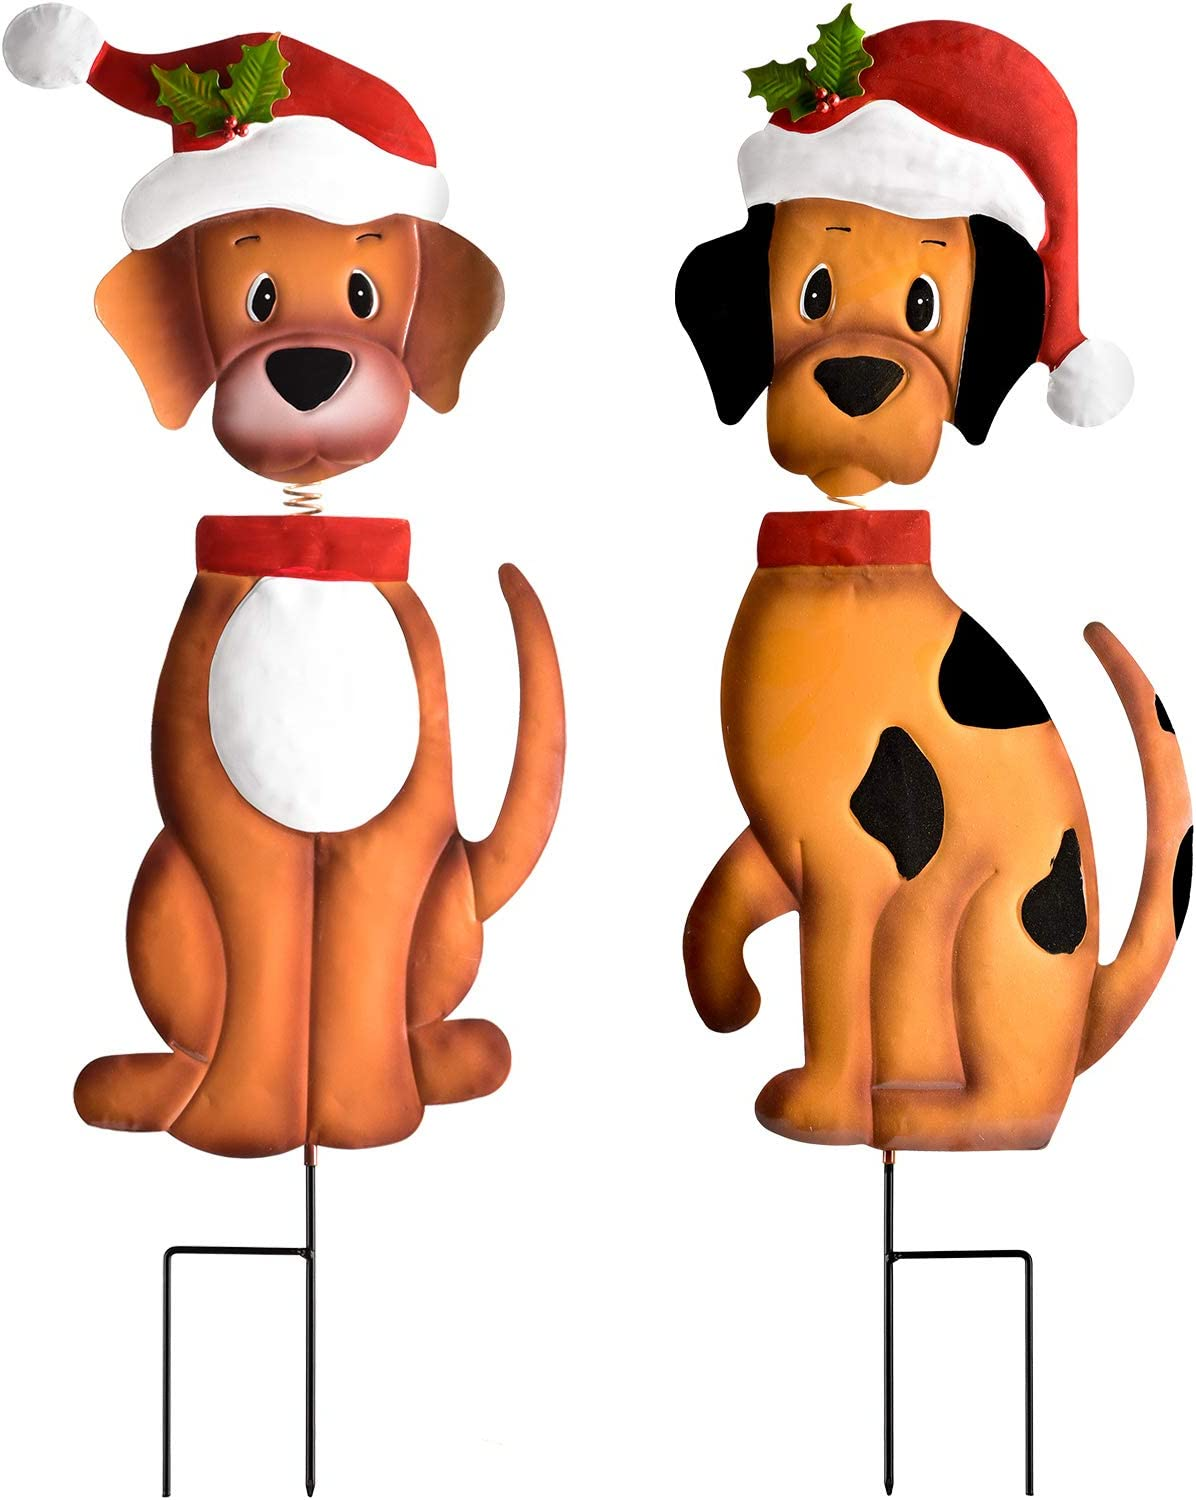 """Artiflr 2 Pack Christmas Yard Signs Decorations, 26"""" Metal Bobble-Head Dog Yard Decor Signs Garden Stakes for Outdoor Garden Lawn Pathway Christmas Decoration"""